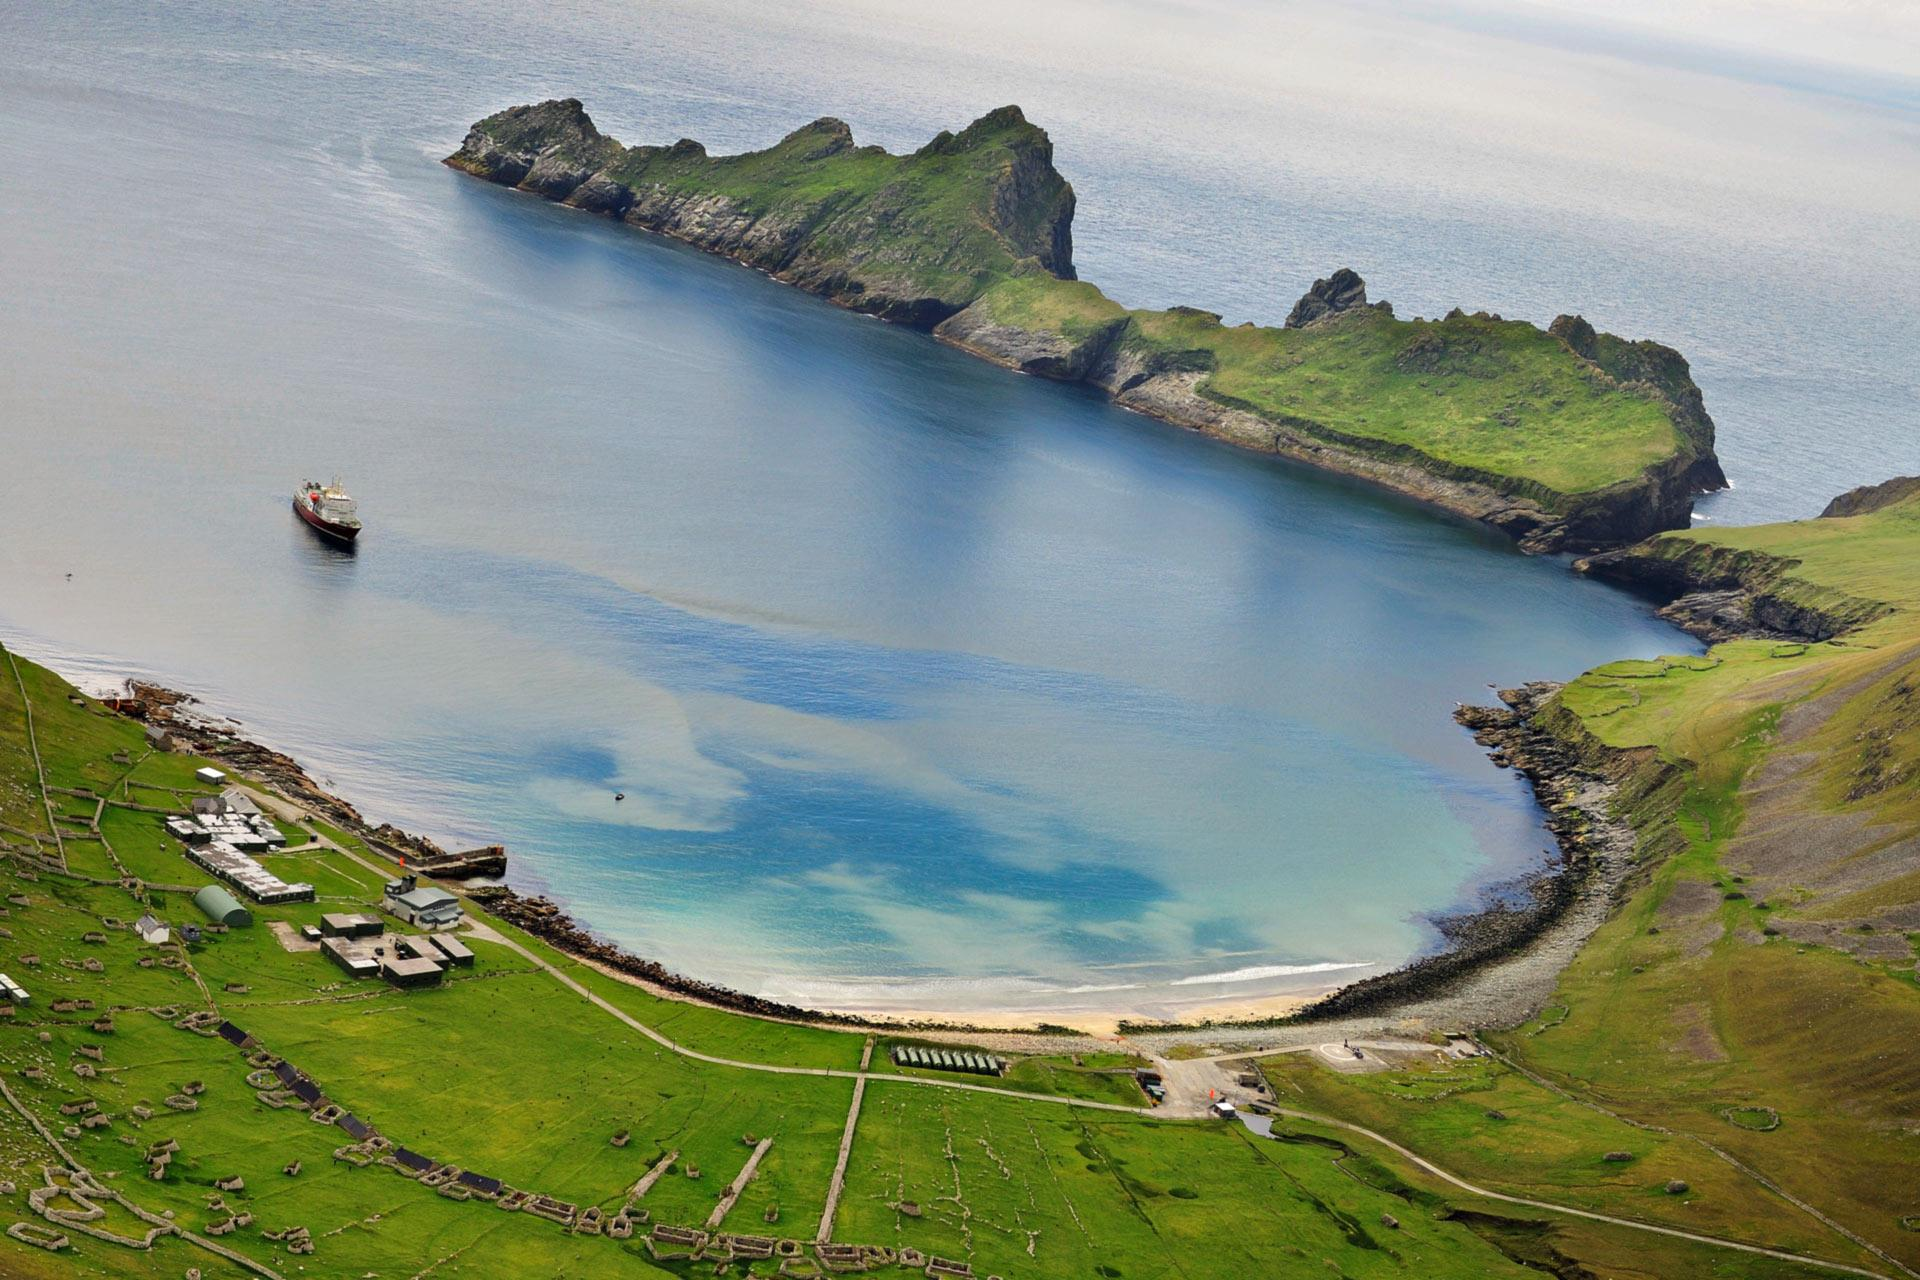 St. Kilda The Northern Highlands and the Western Isles, Scottish Islands & Island Hopping Holidays | VisitScotland